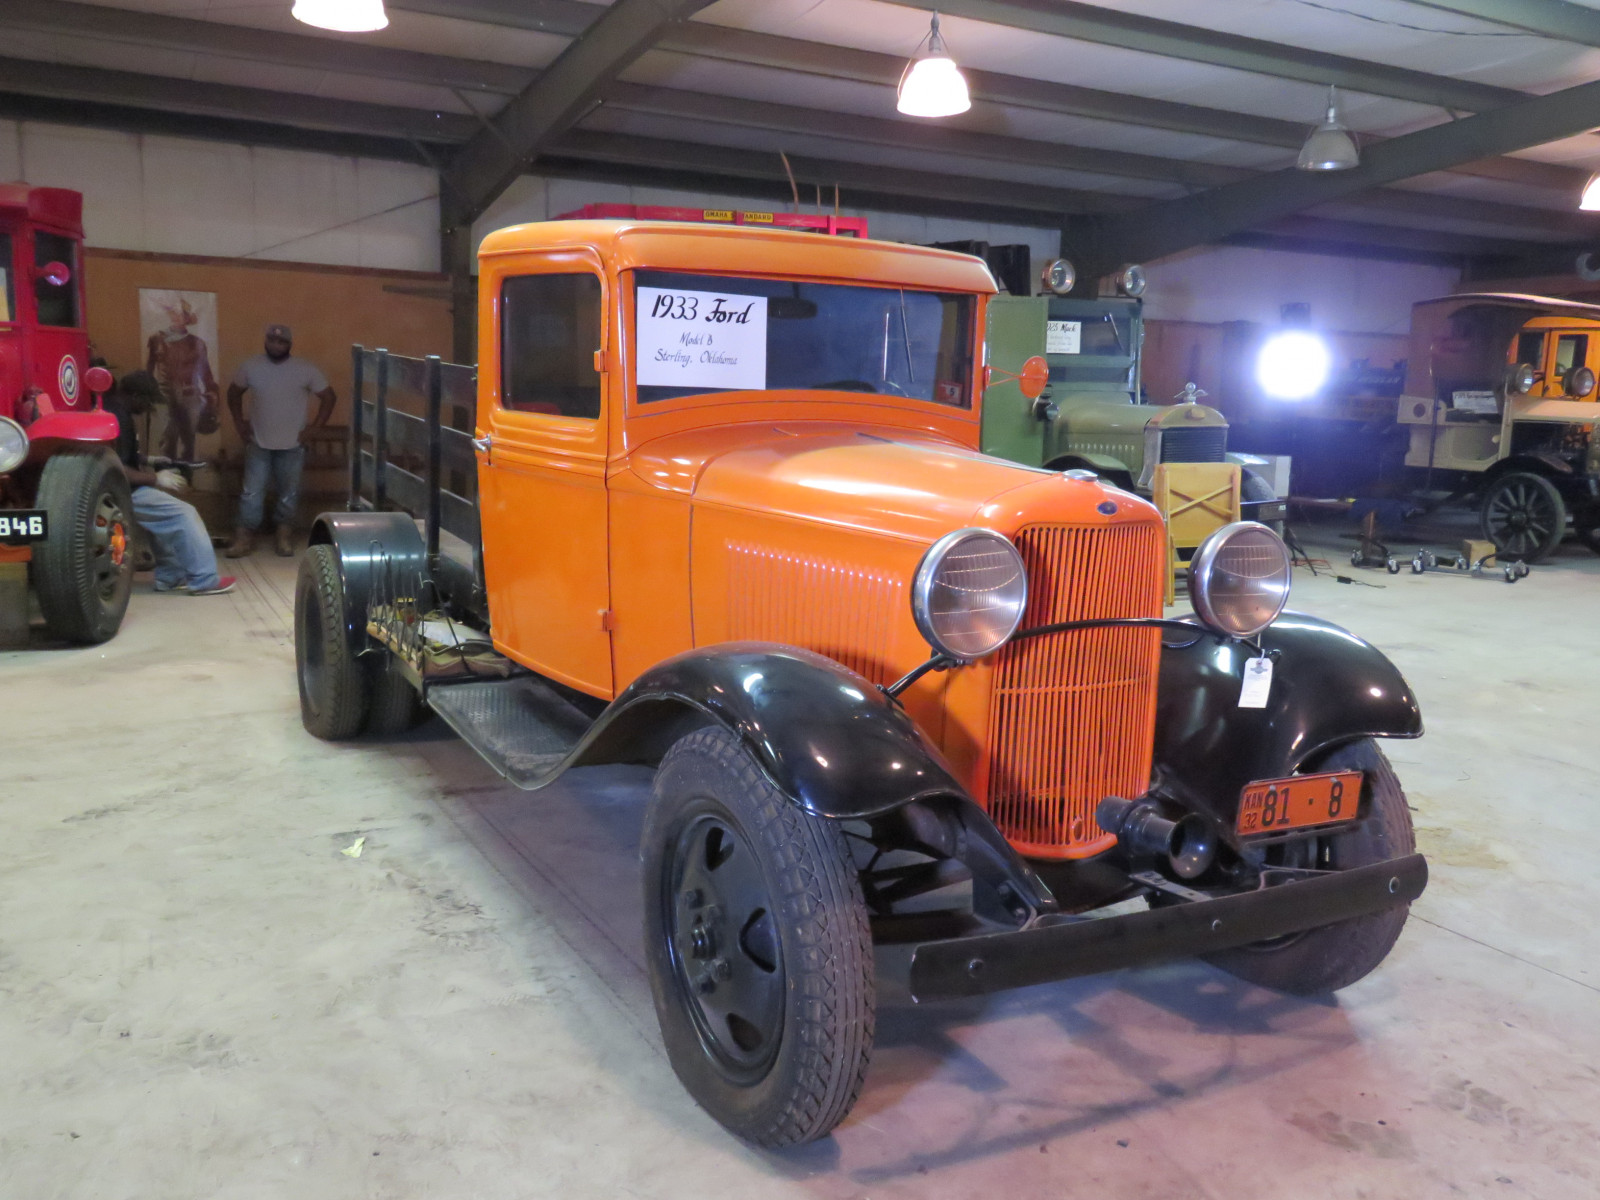 1932 1/2 Ford Model B Stake Bed Truck - Image 1